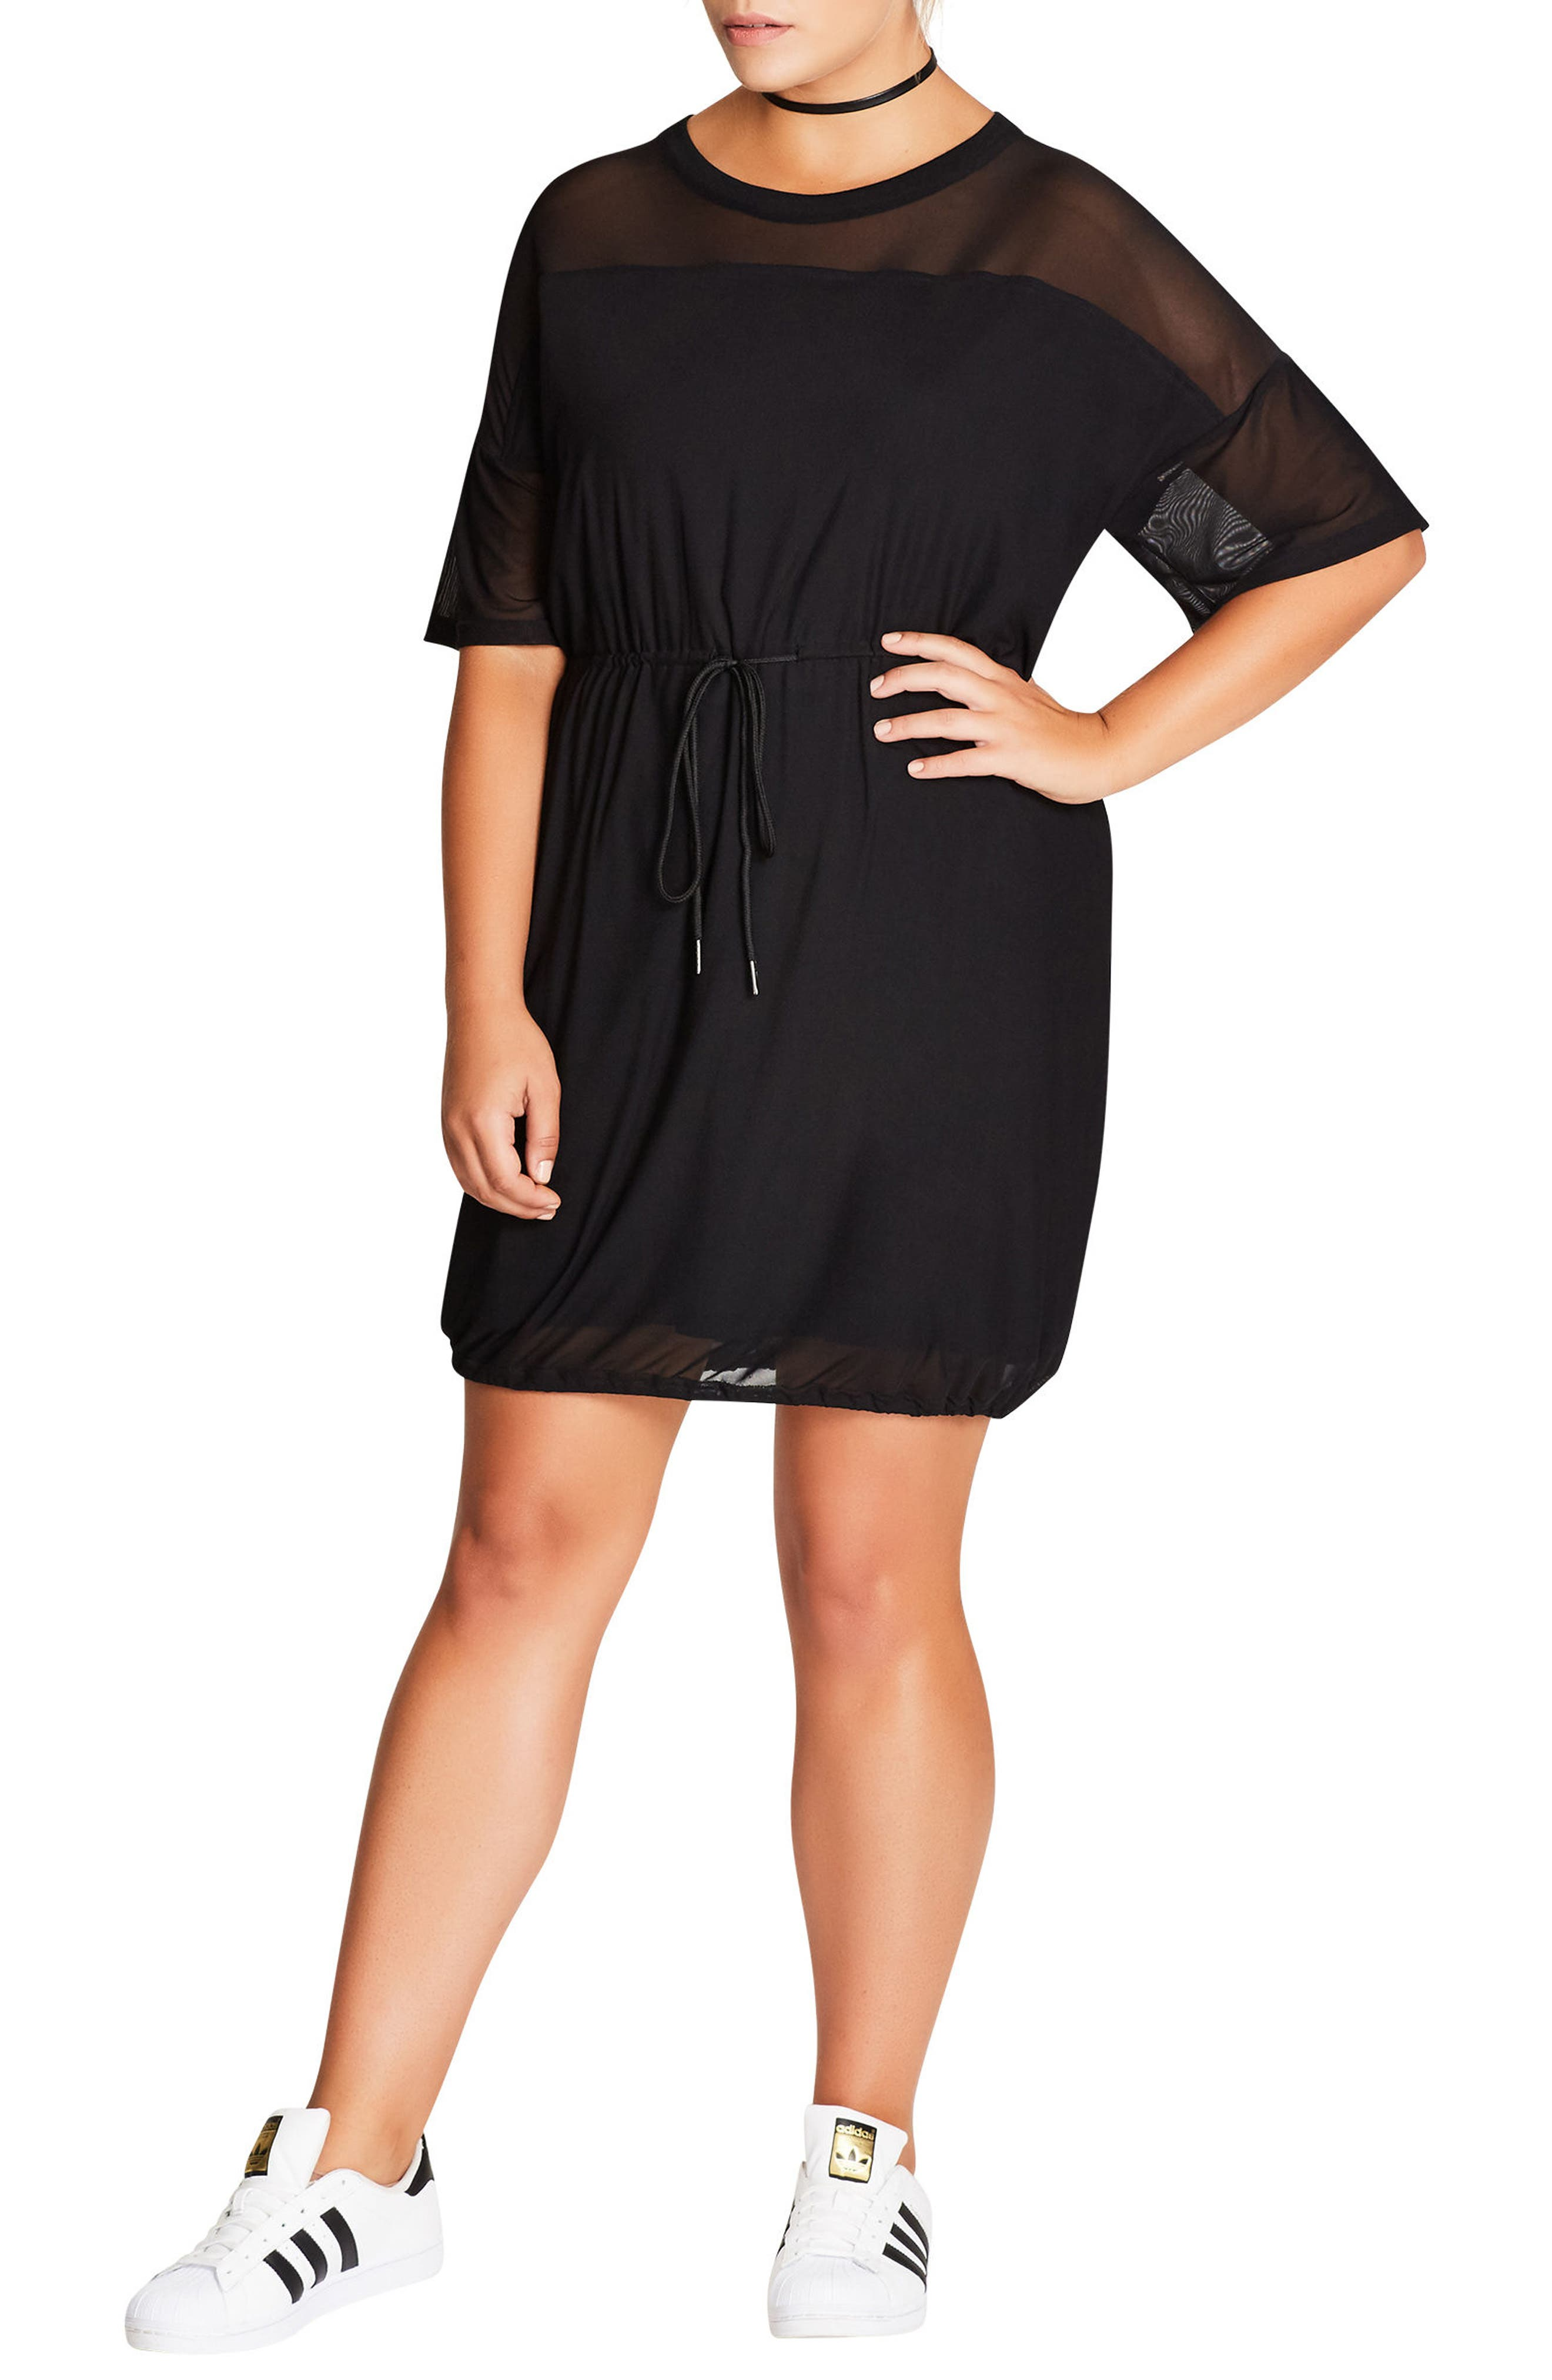 Sports One Tunic,                             Main thumbnail 1, color,                             001